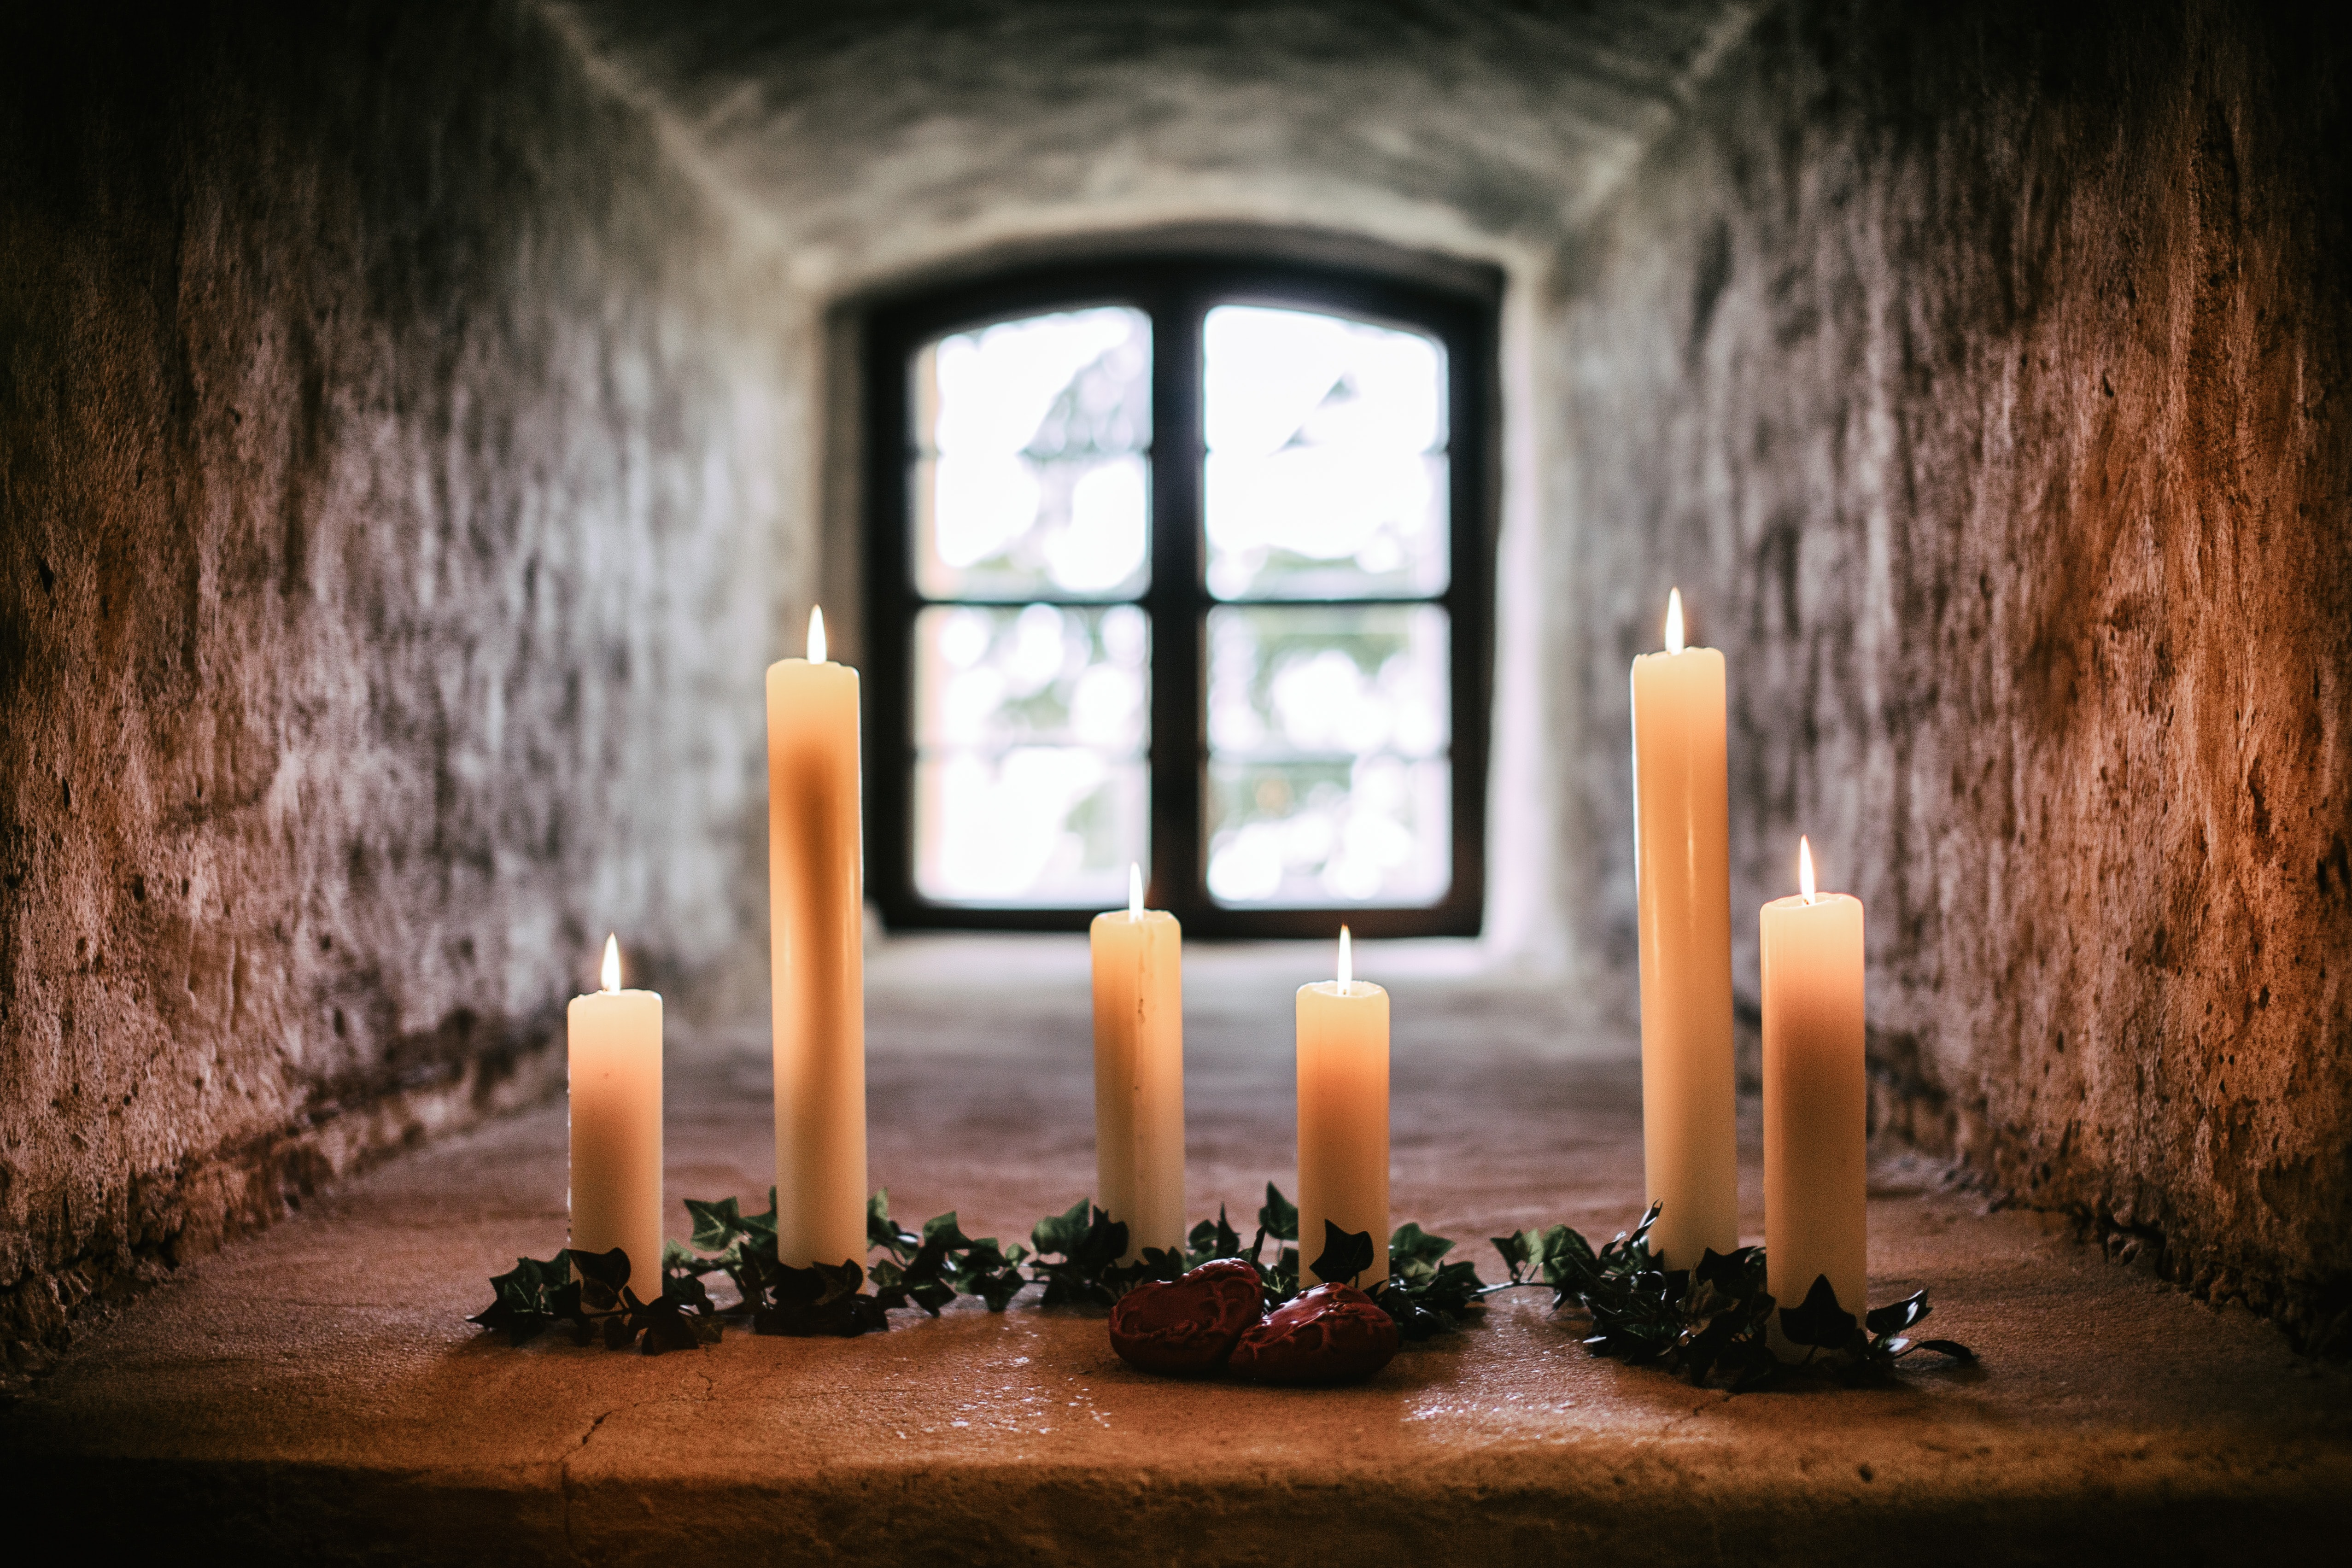 six white taper candles standing on gray concrete pavement in room